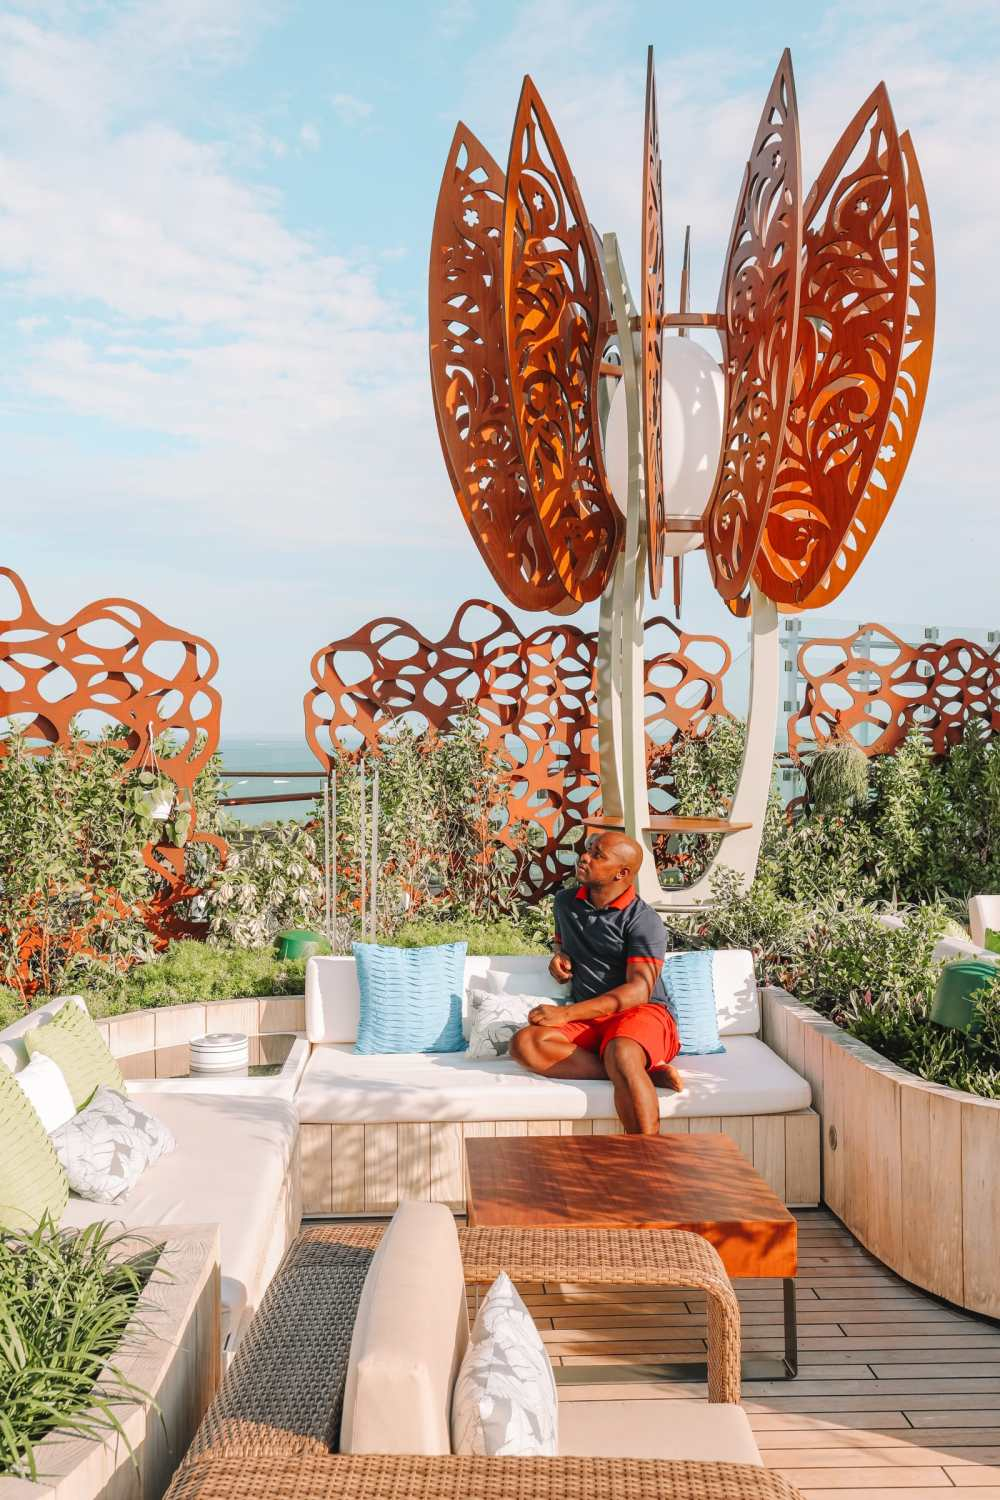 Celebrity Edge Cruise: What Is It Really Like? (18)